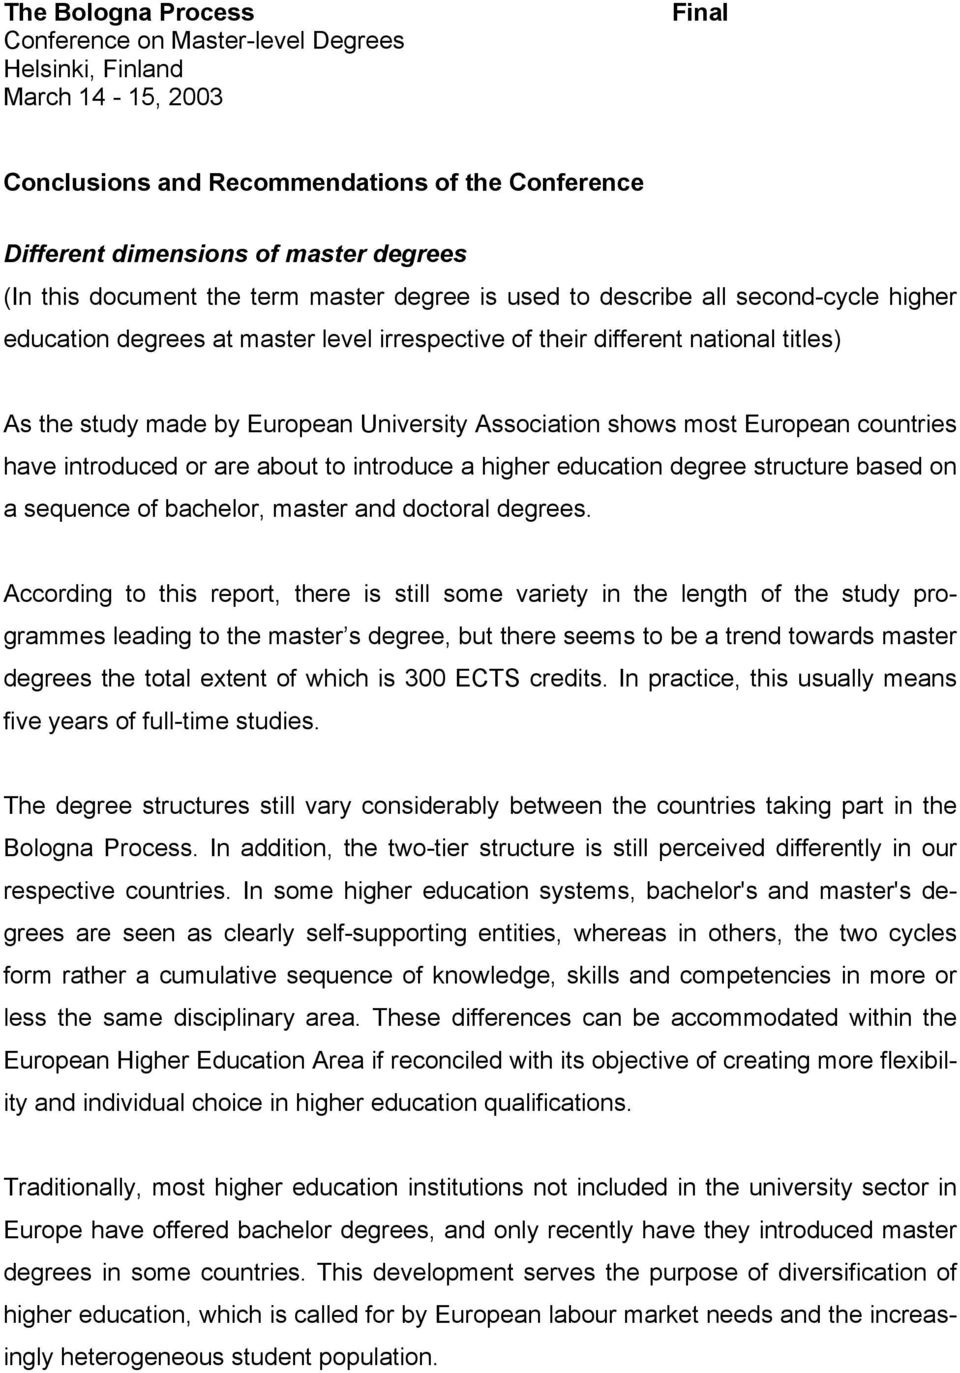 Association shows most European countries have introduced or are about to introduce a higher education degree structure based on a sequence of bachelor, master and doctoral degrees.